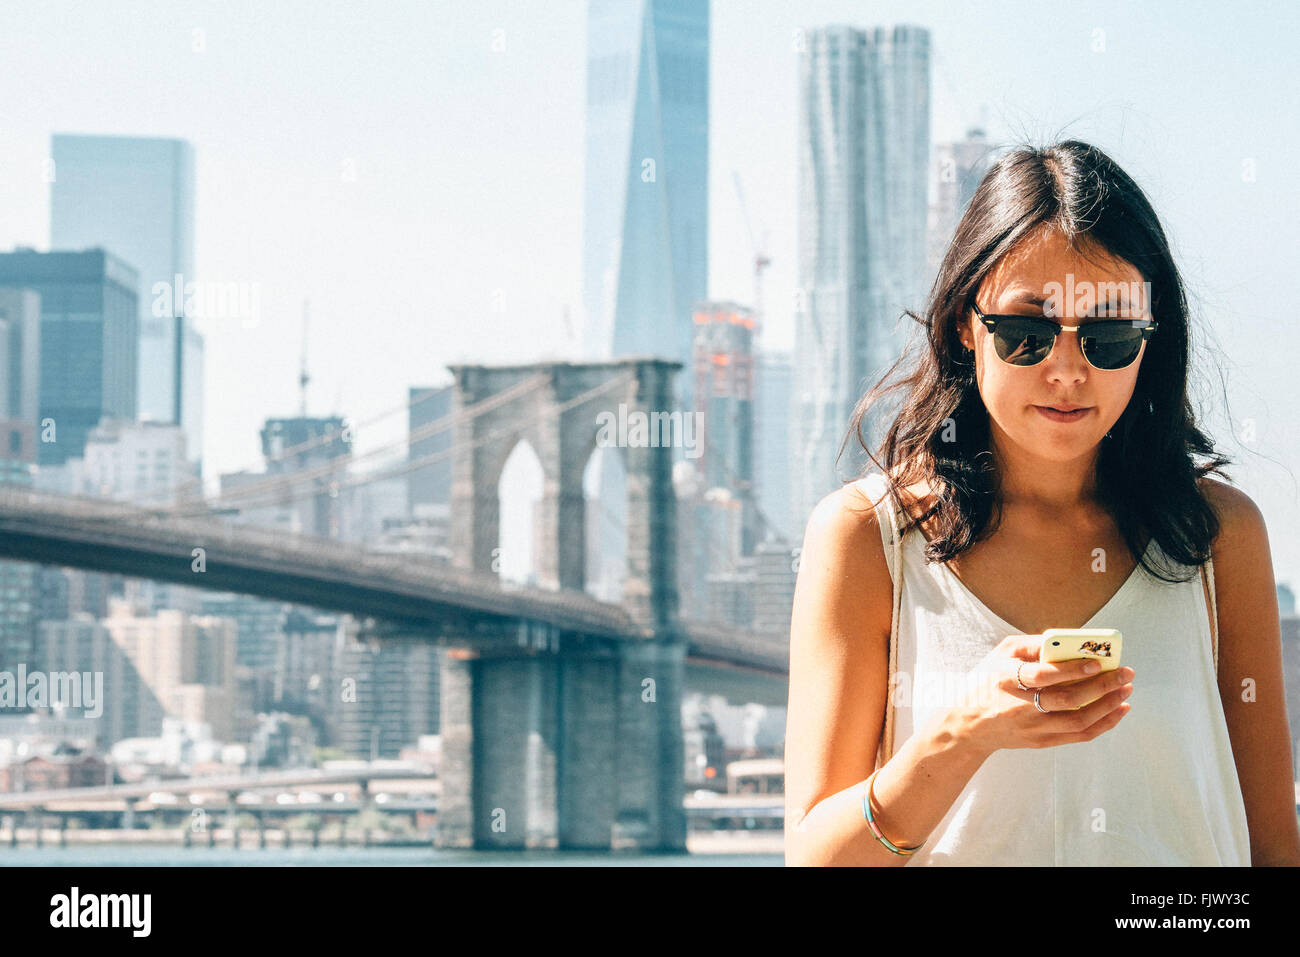 Young Woman Using Smart Phone contre Pont de Brooklyn Banque D'Images